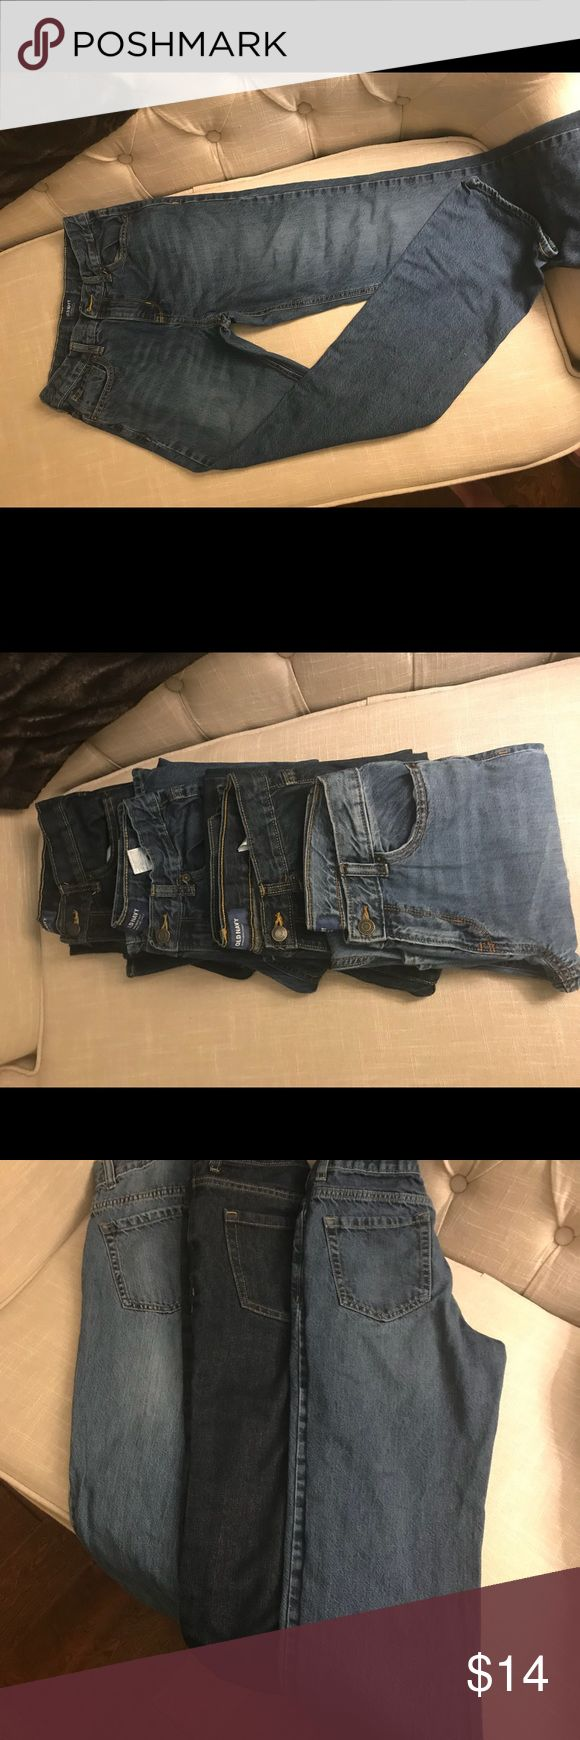 Old Navy Jeans Straight Leg Size 16 Boys Size 16 straight leg jeans with adjustable elastic waistband.  EUC with no signs of wear. Son had a growth spurt right after purchasing.  Check out my other listings for more great deals on boys clothing. Bundle and save more! Old Navy Bottoms Jeans